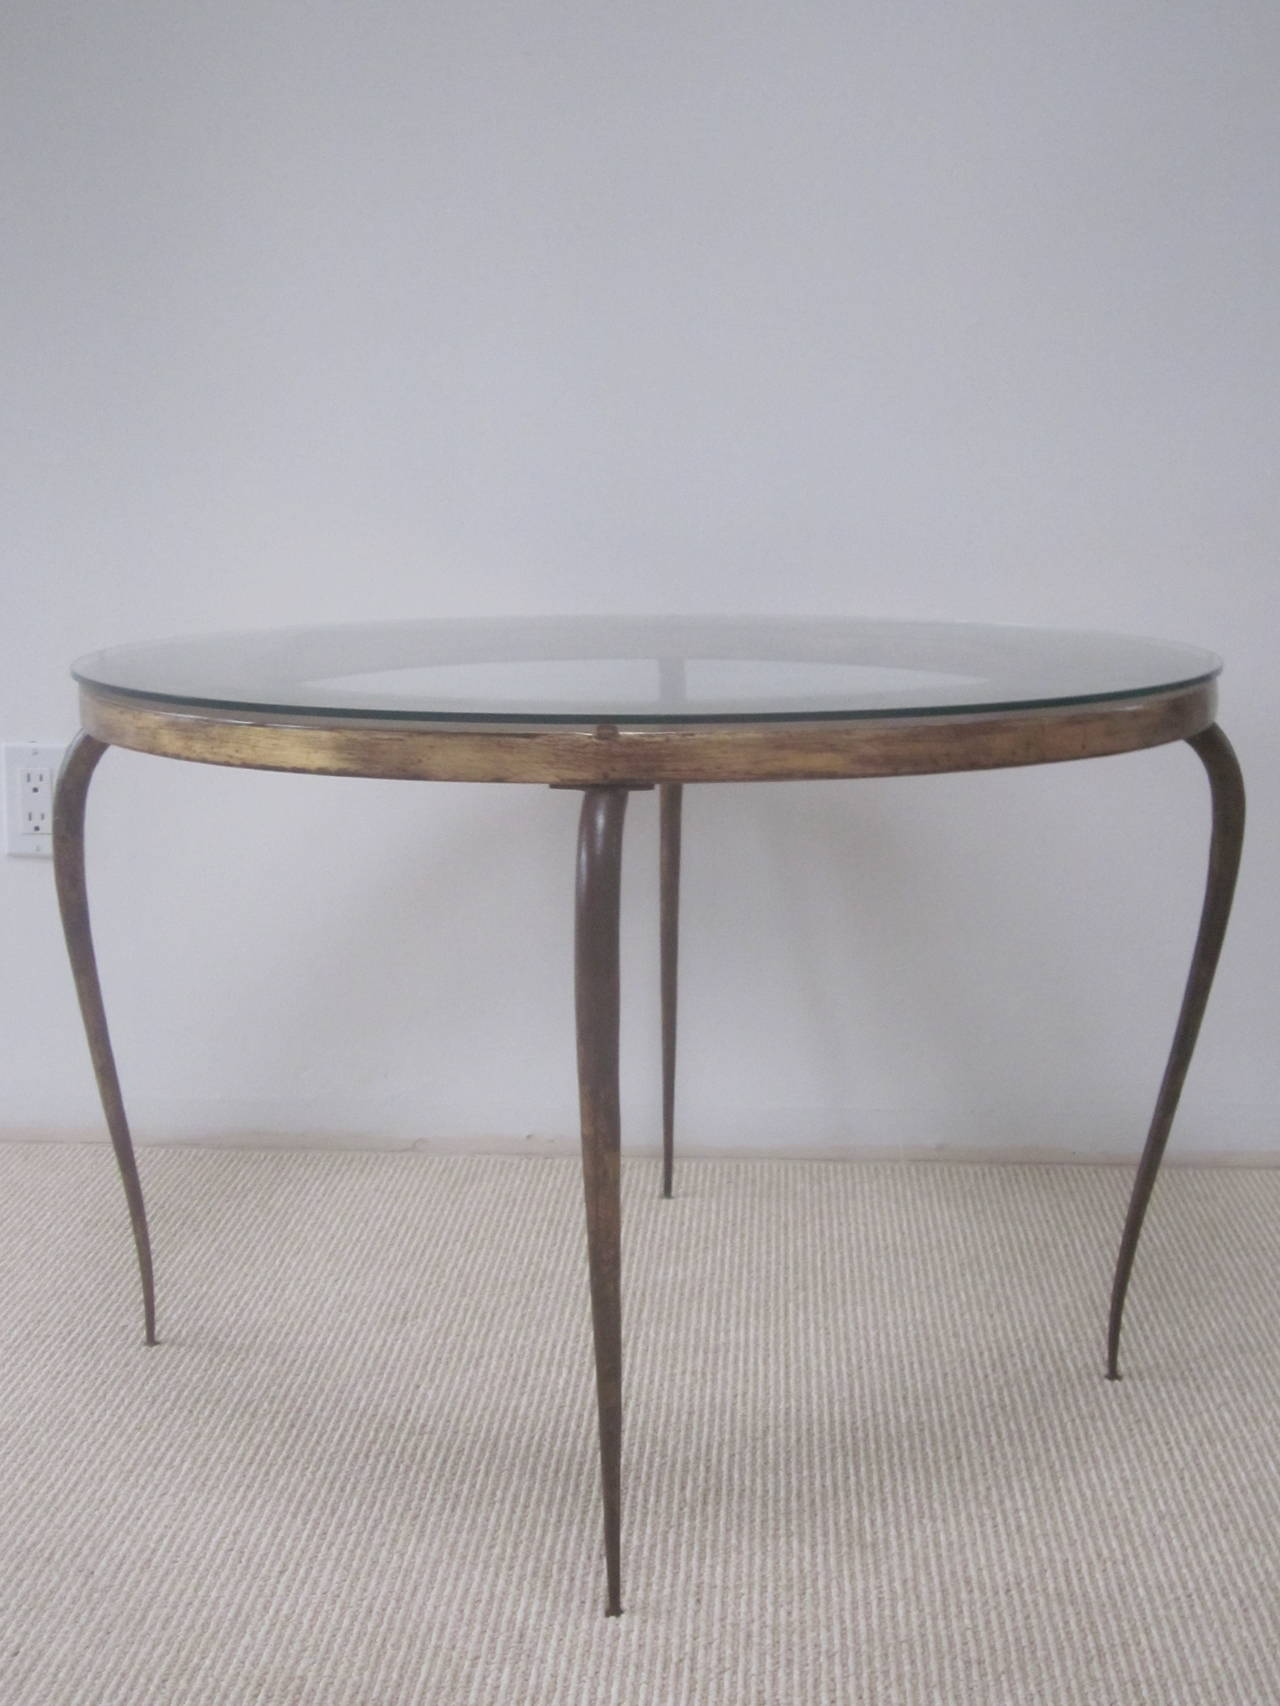 Delicate French 1940s Gilt Iron Cocktail Table by Rene Prou 5